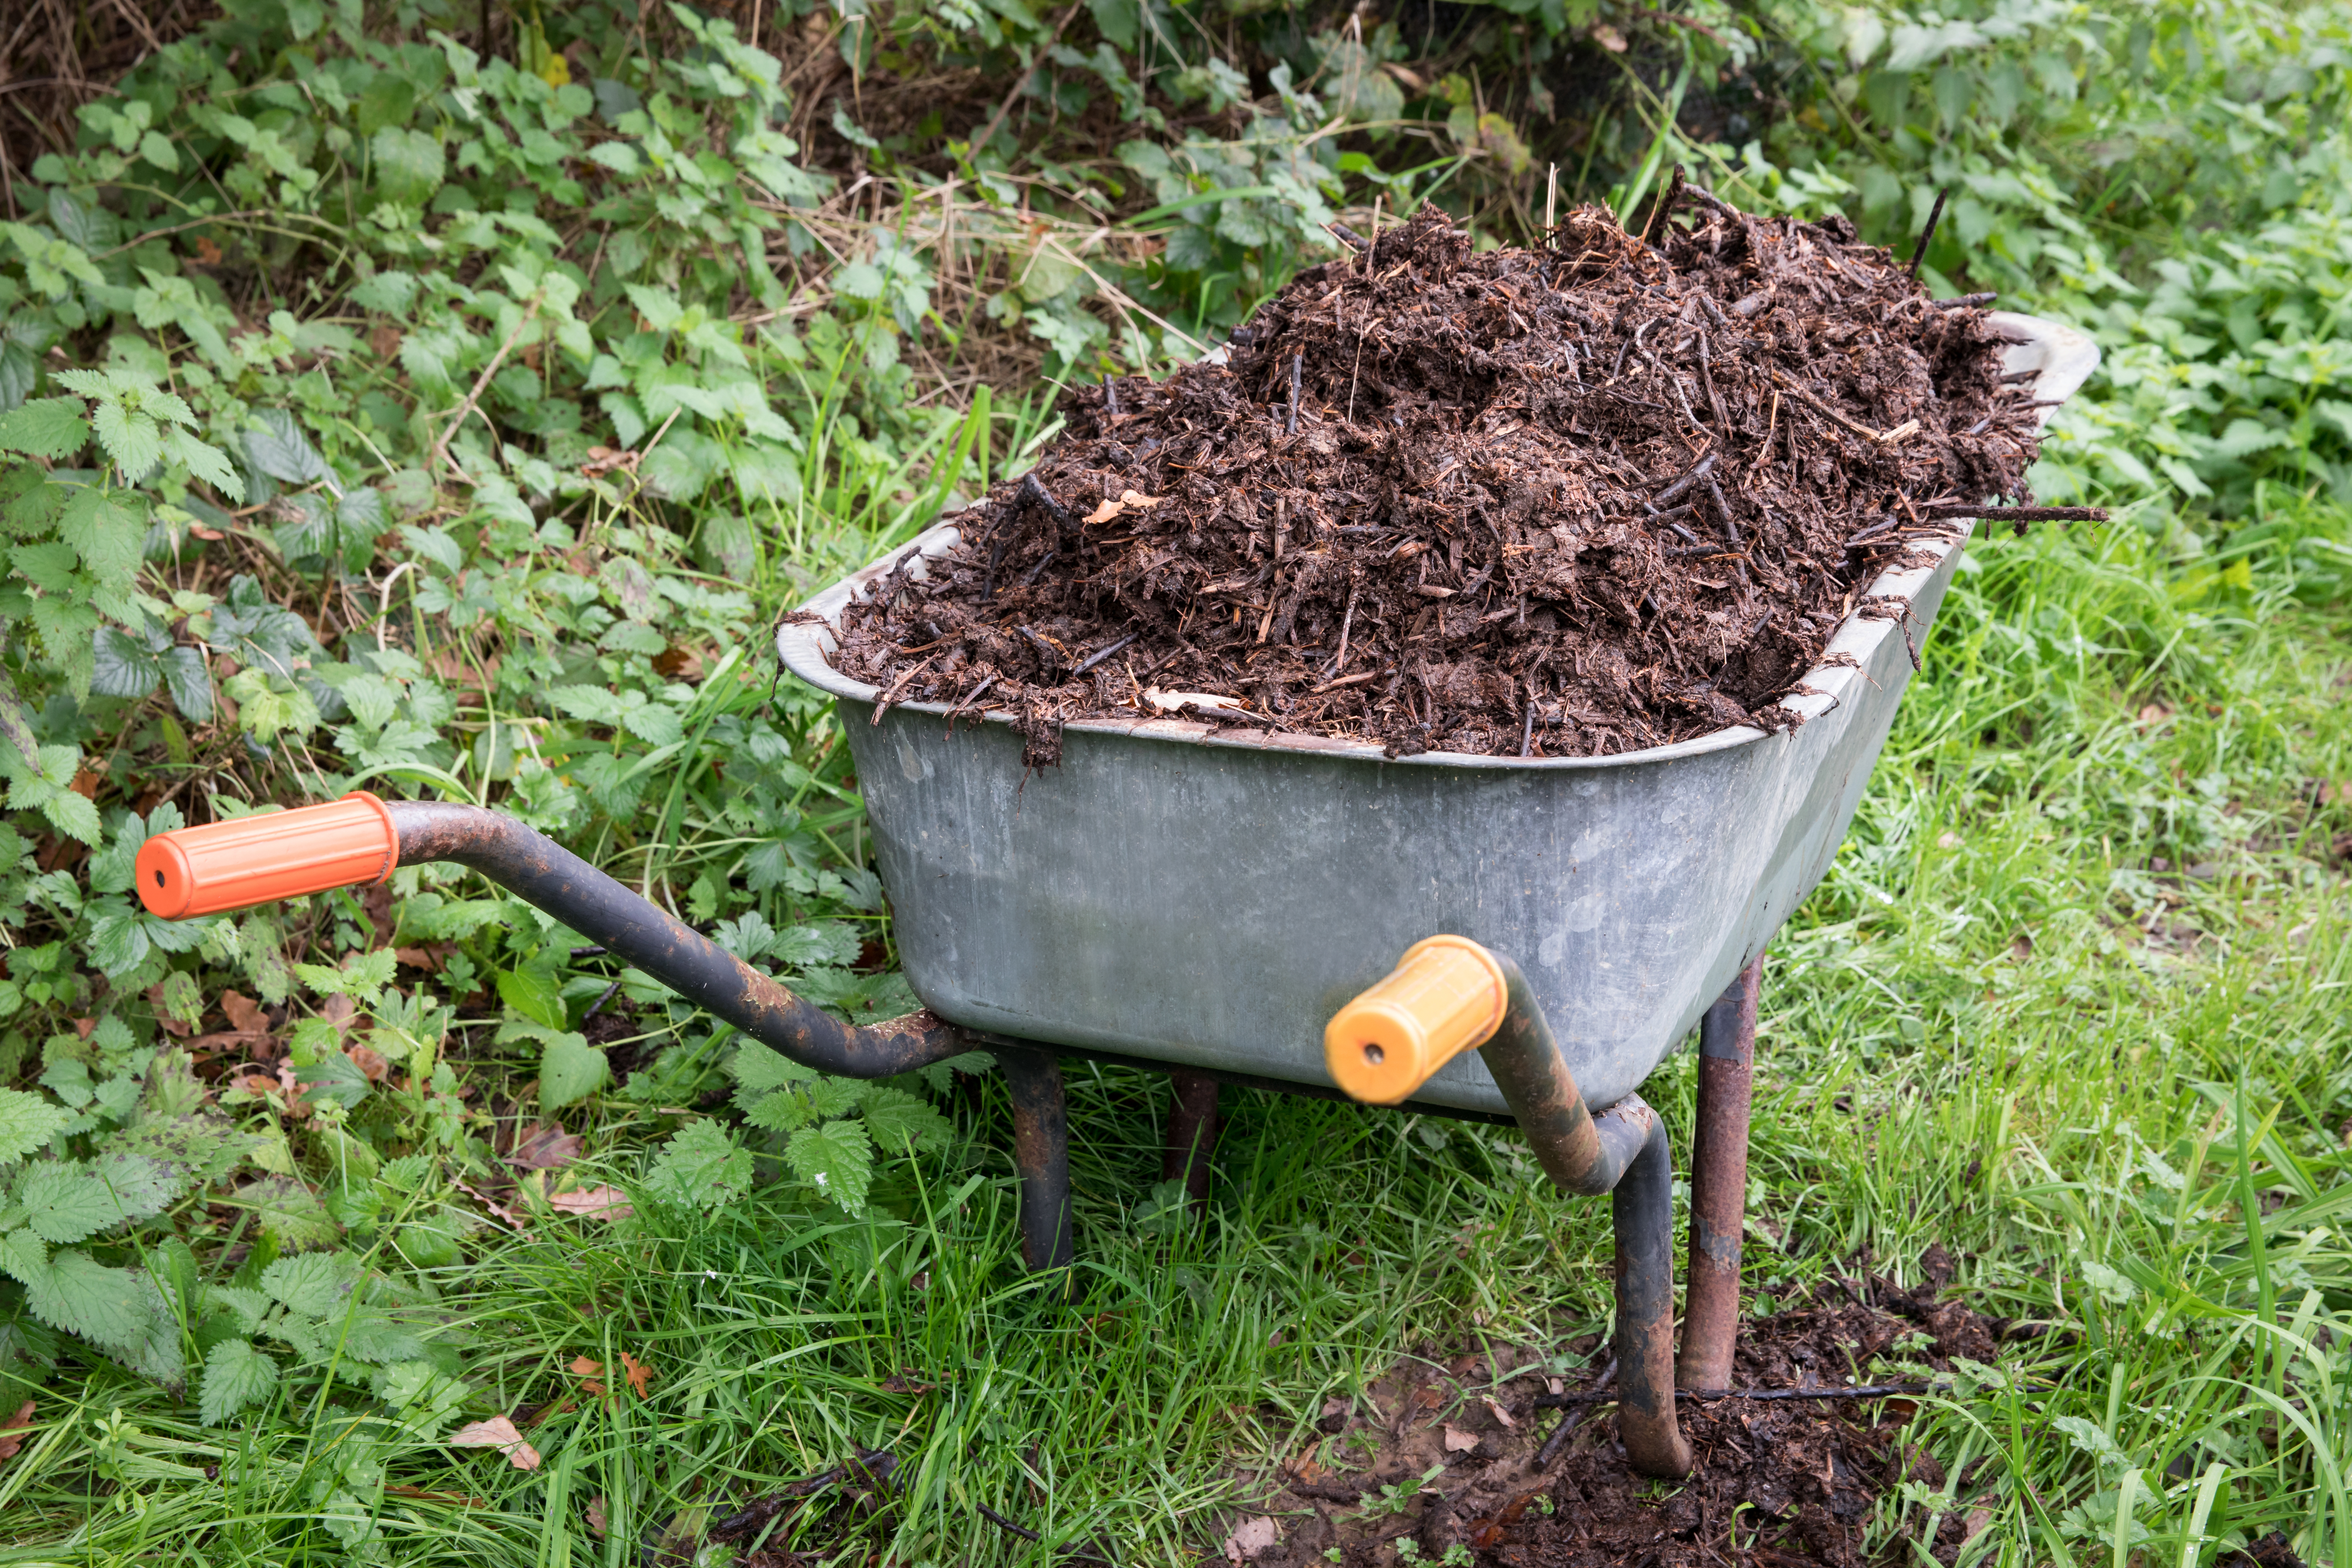 How to Control Ants in a Compost Pile | Home Guides | SF Gate